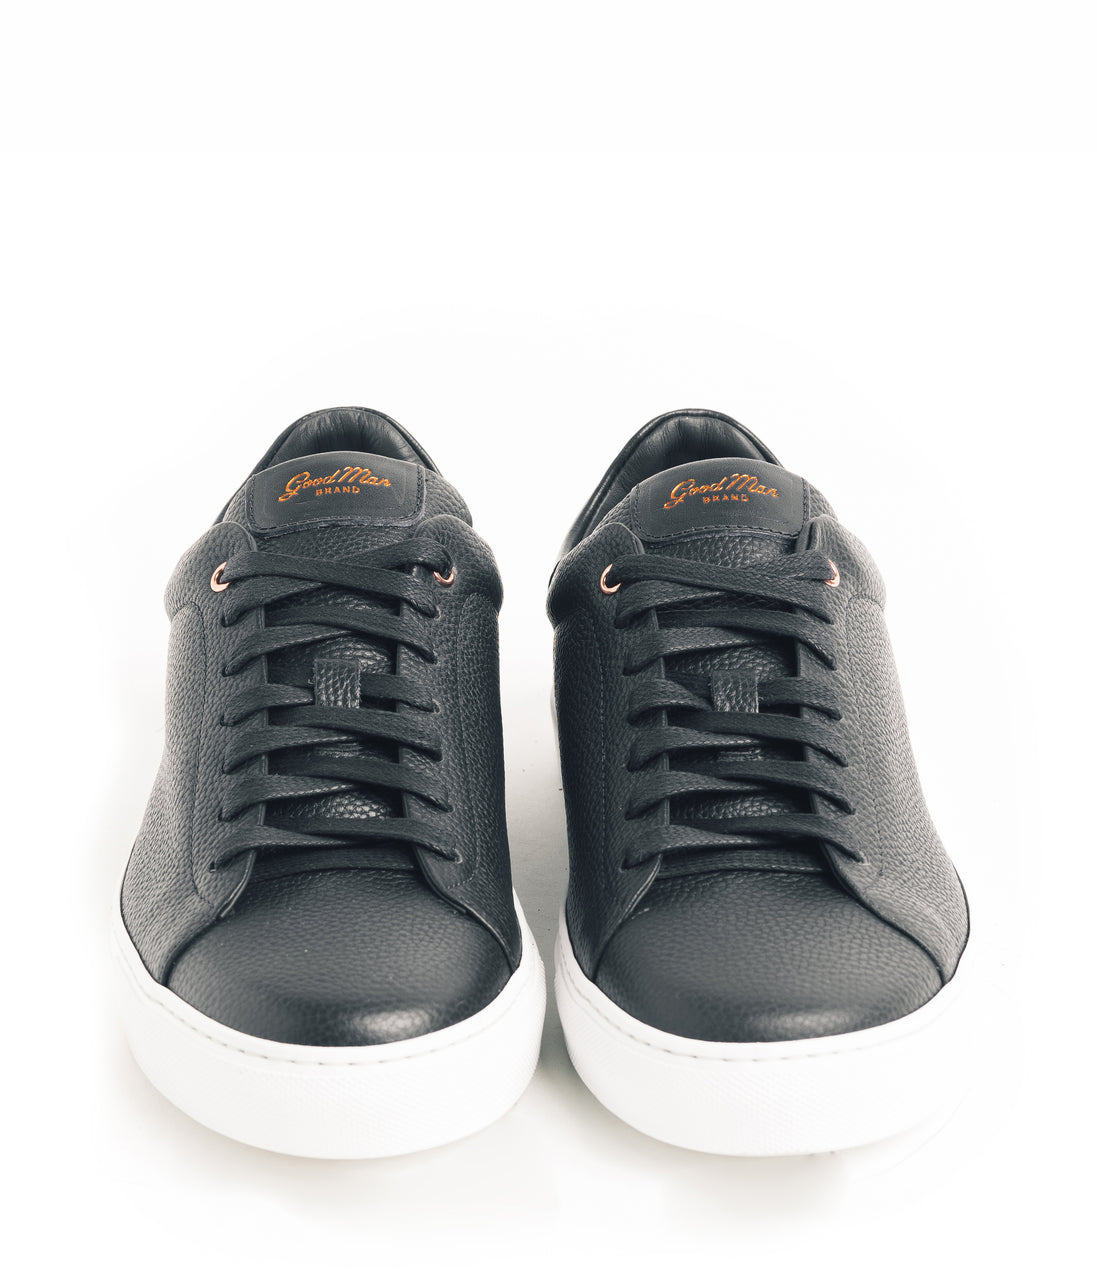 Legend Lo Top Sneaker - Black - Good Man Brand - Legend Lo Top Sneaker - Black Pebble - Footwear - Good Man Brand